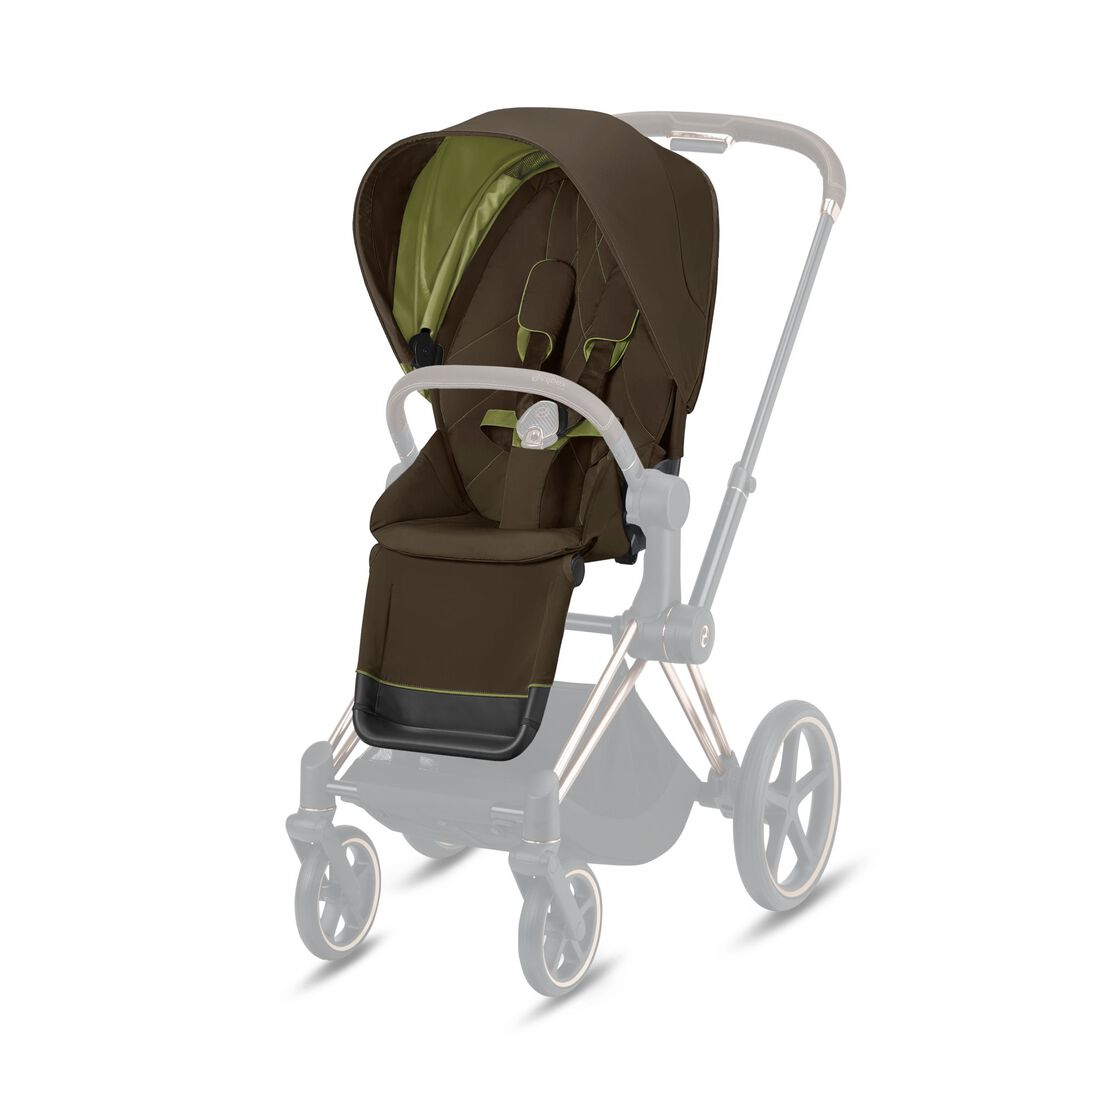 CYBEX Priam Seat Pack - Khaki Green in Khaki Green large image number 1